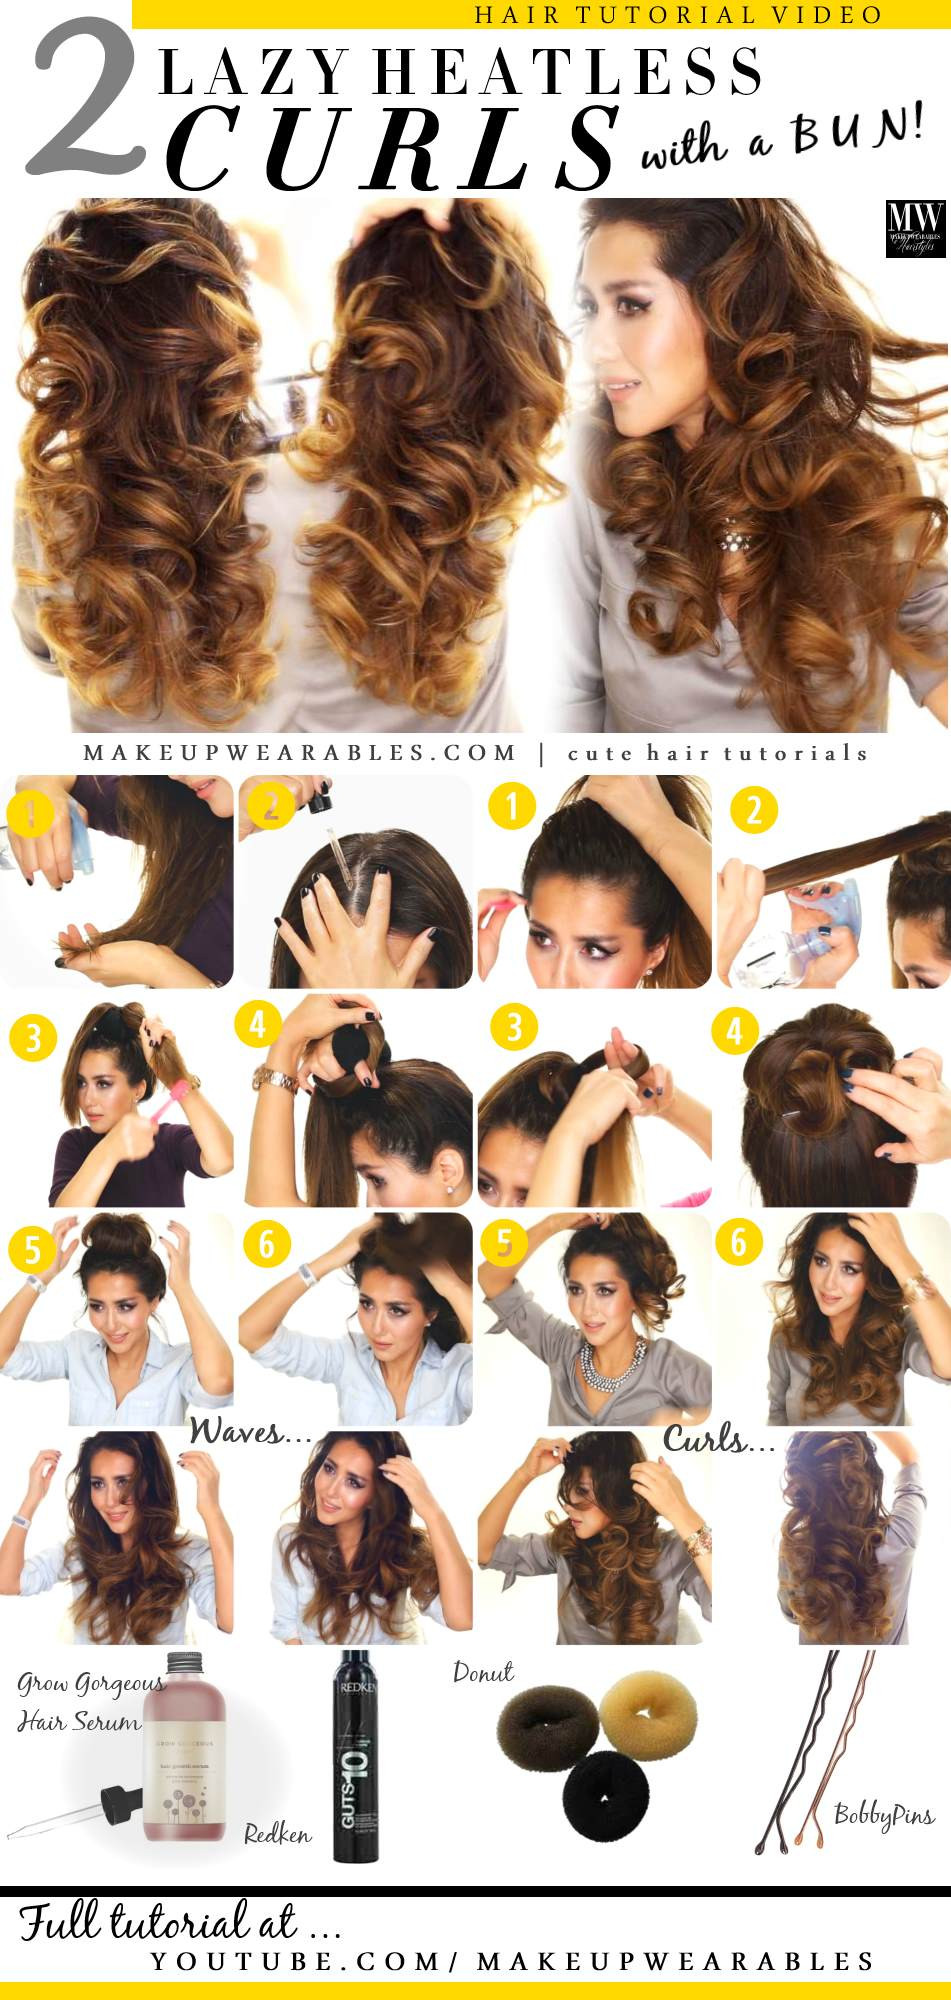 Best ideas about Easy Overnight Hairstyles . Save or Pin 2 Ways to Lazy Heatless Curls using a Bun Now.